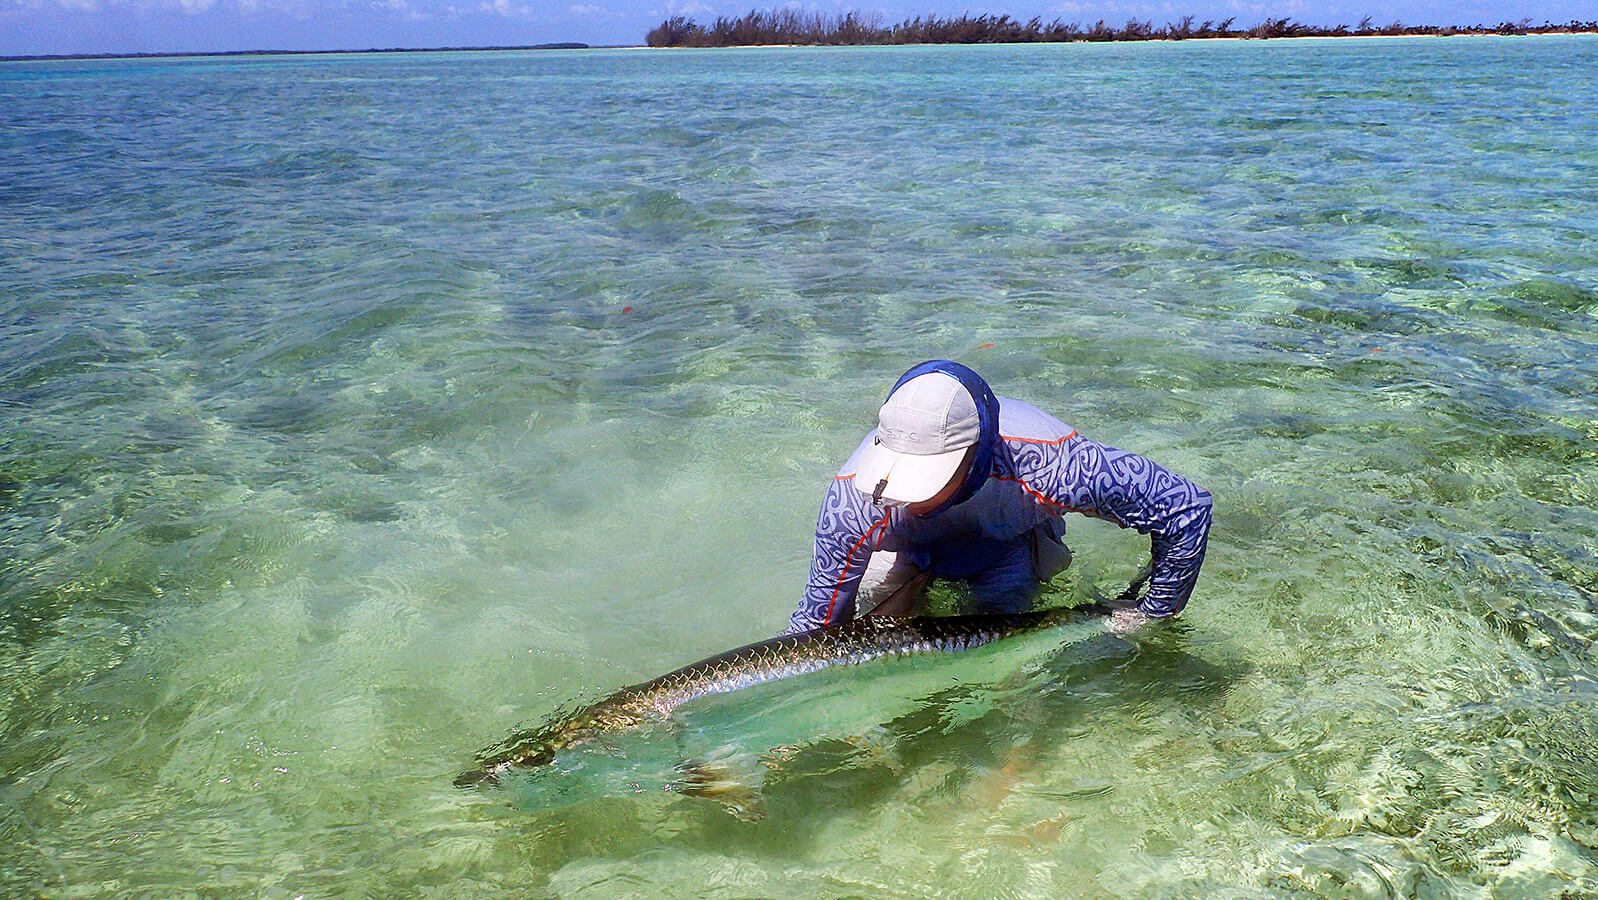 Giant Tarpon Günter Feuerstein saltwater fly fishing